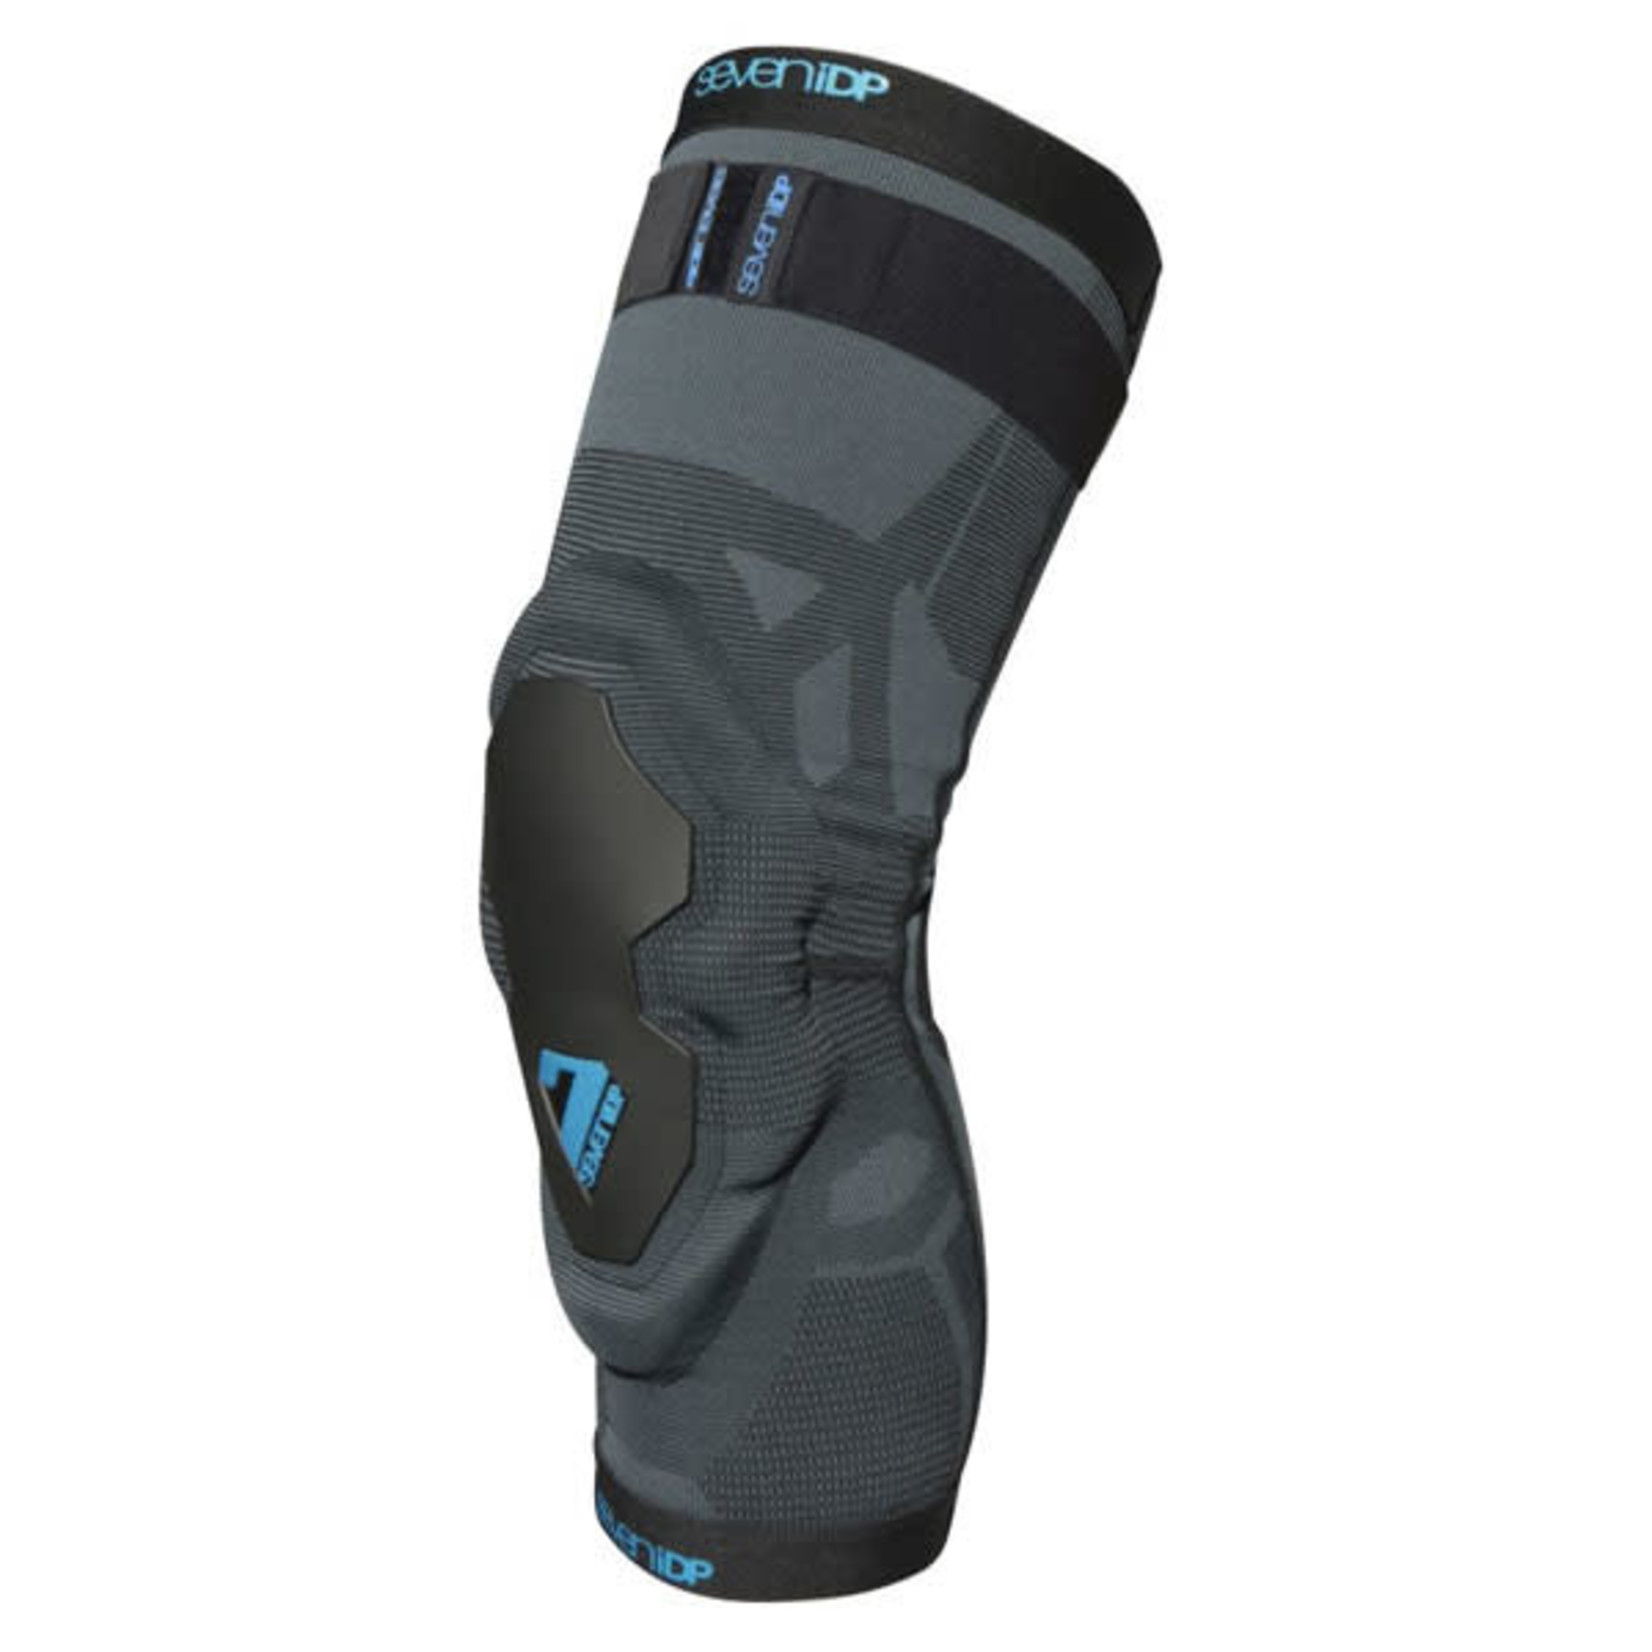 7 Protection 7 Protection - Knee Pad - Project Knee